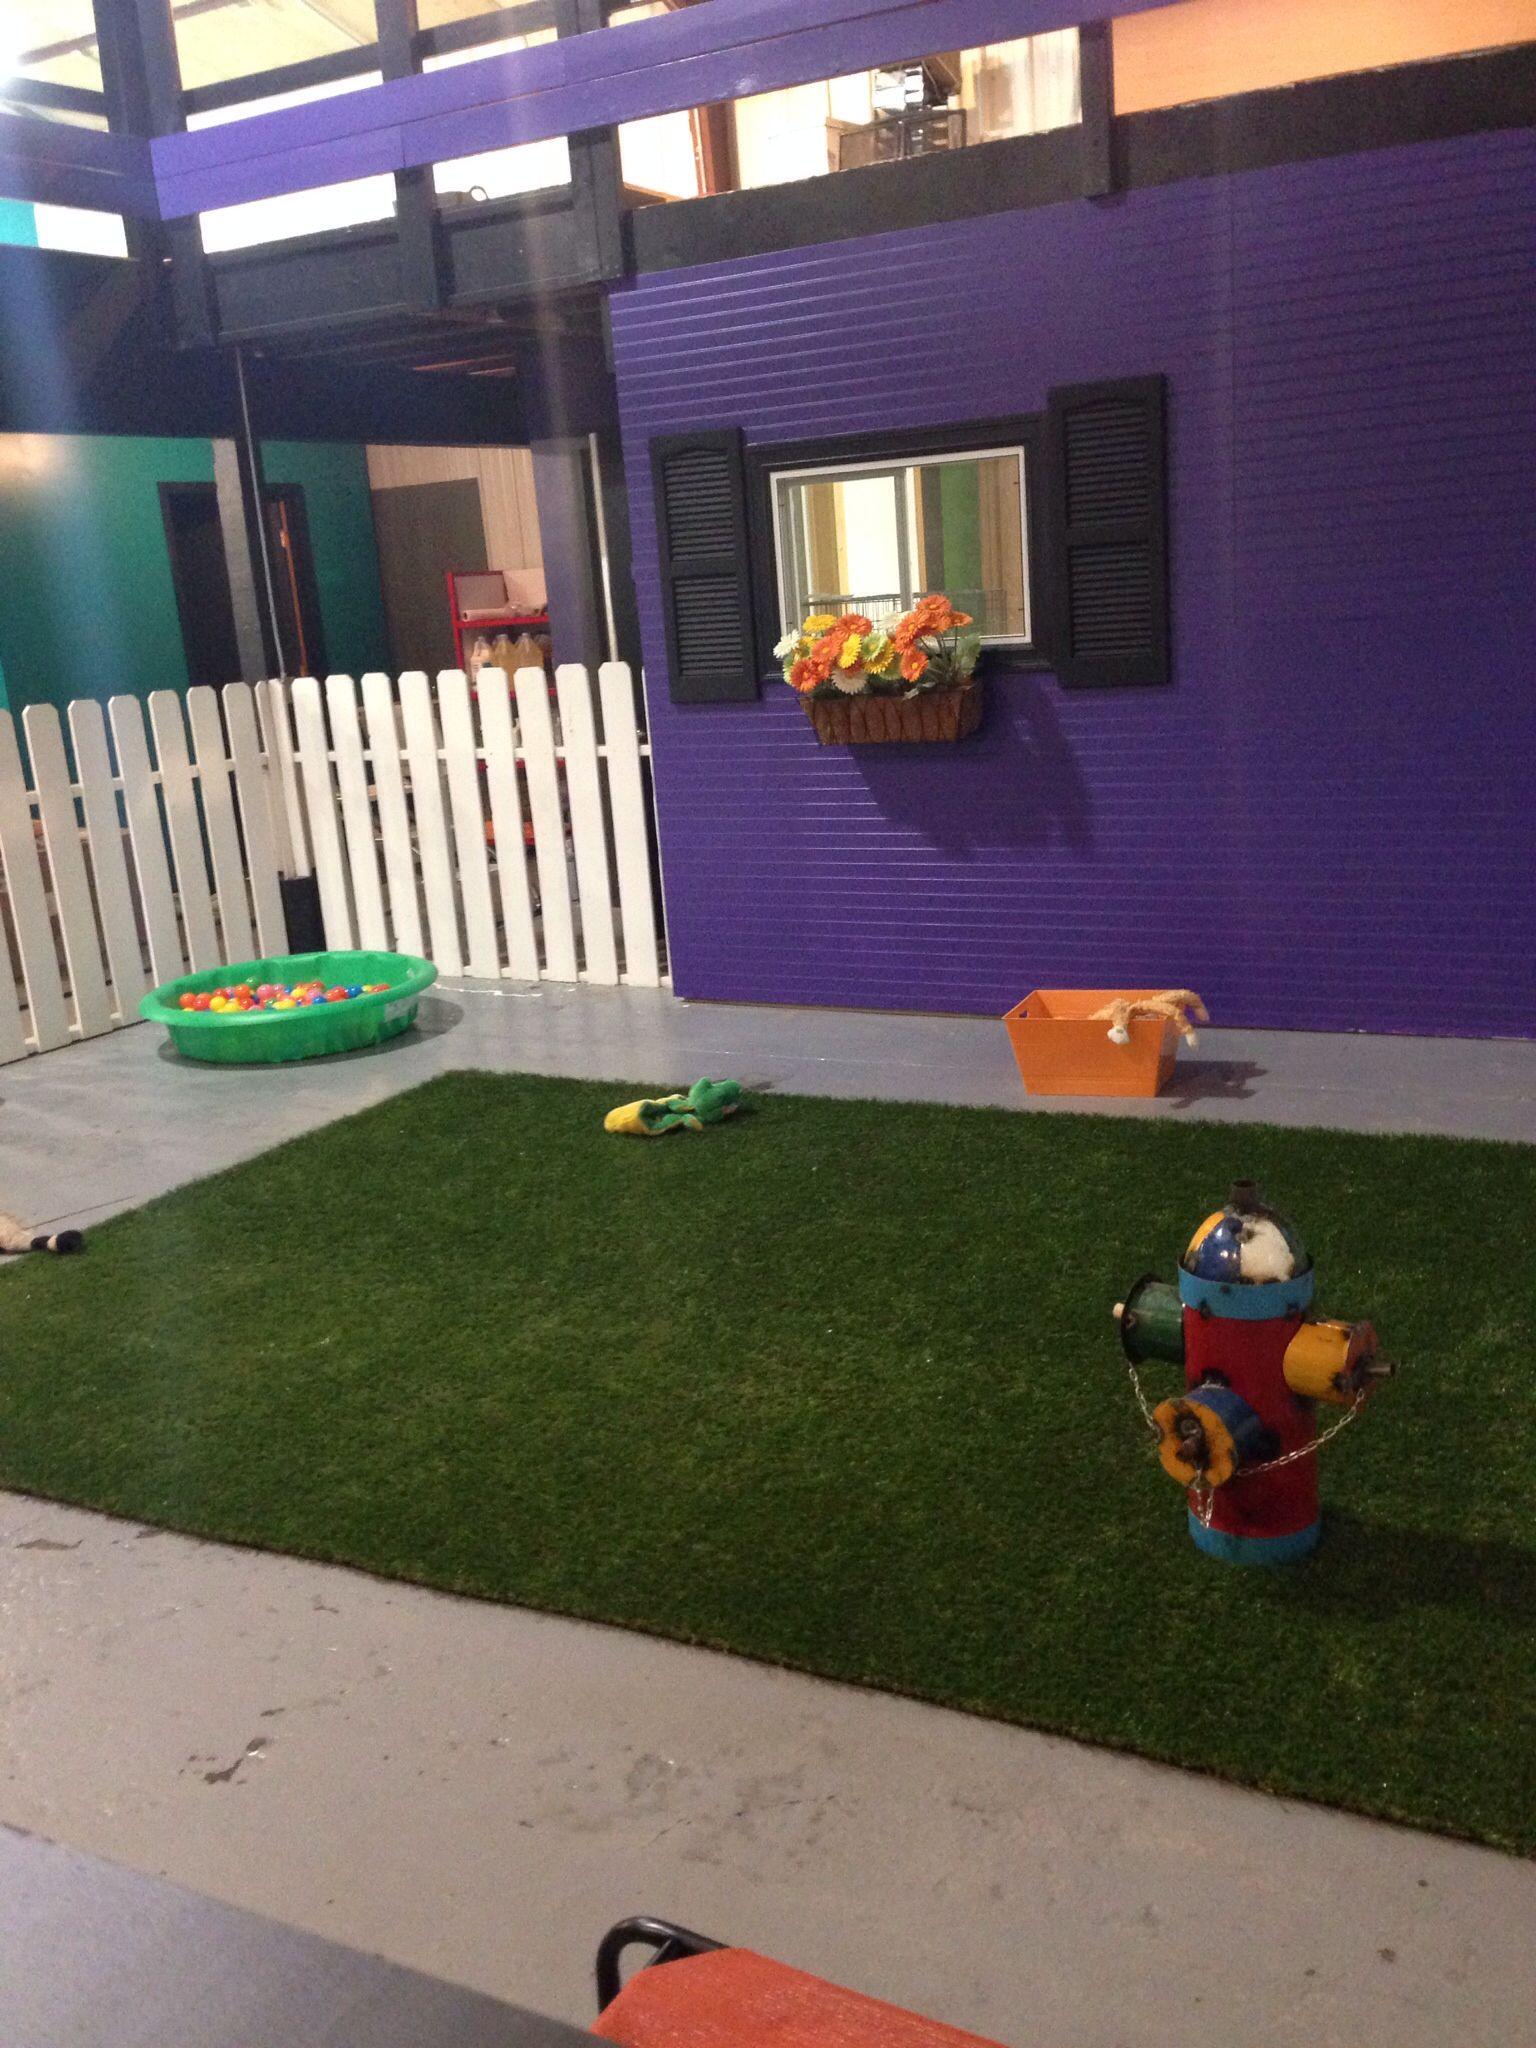 Repinned Doggie Play Area In Grooming Salon Dog Grooming Salons Grooming Salon Dog Grooming Shop